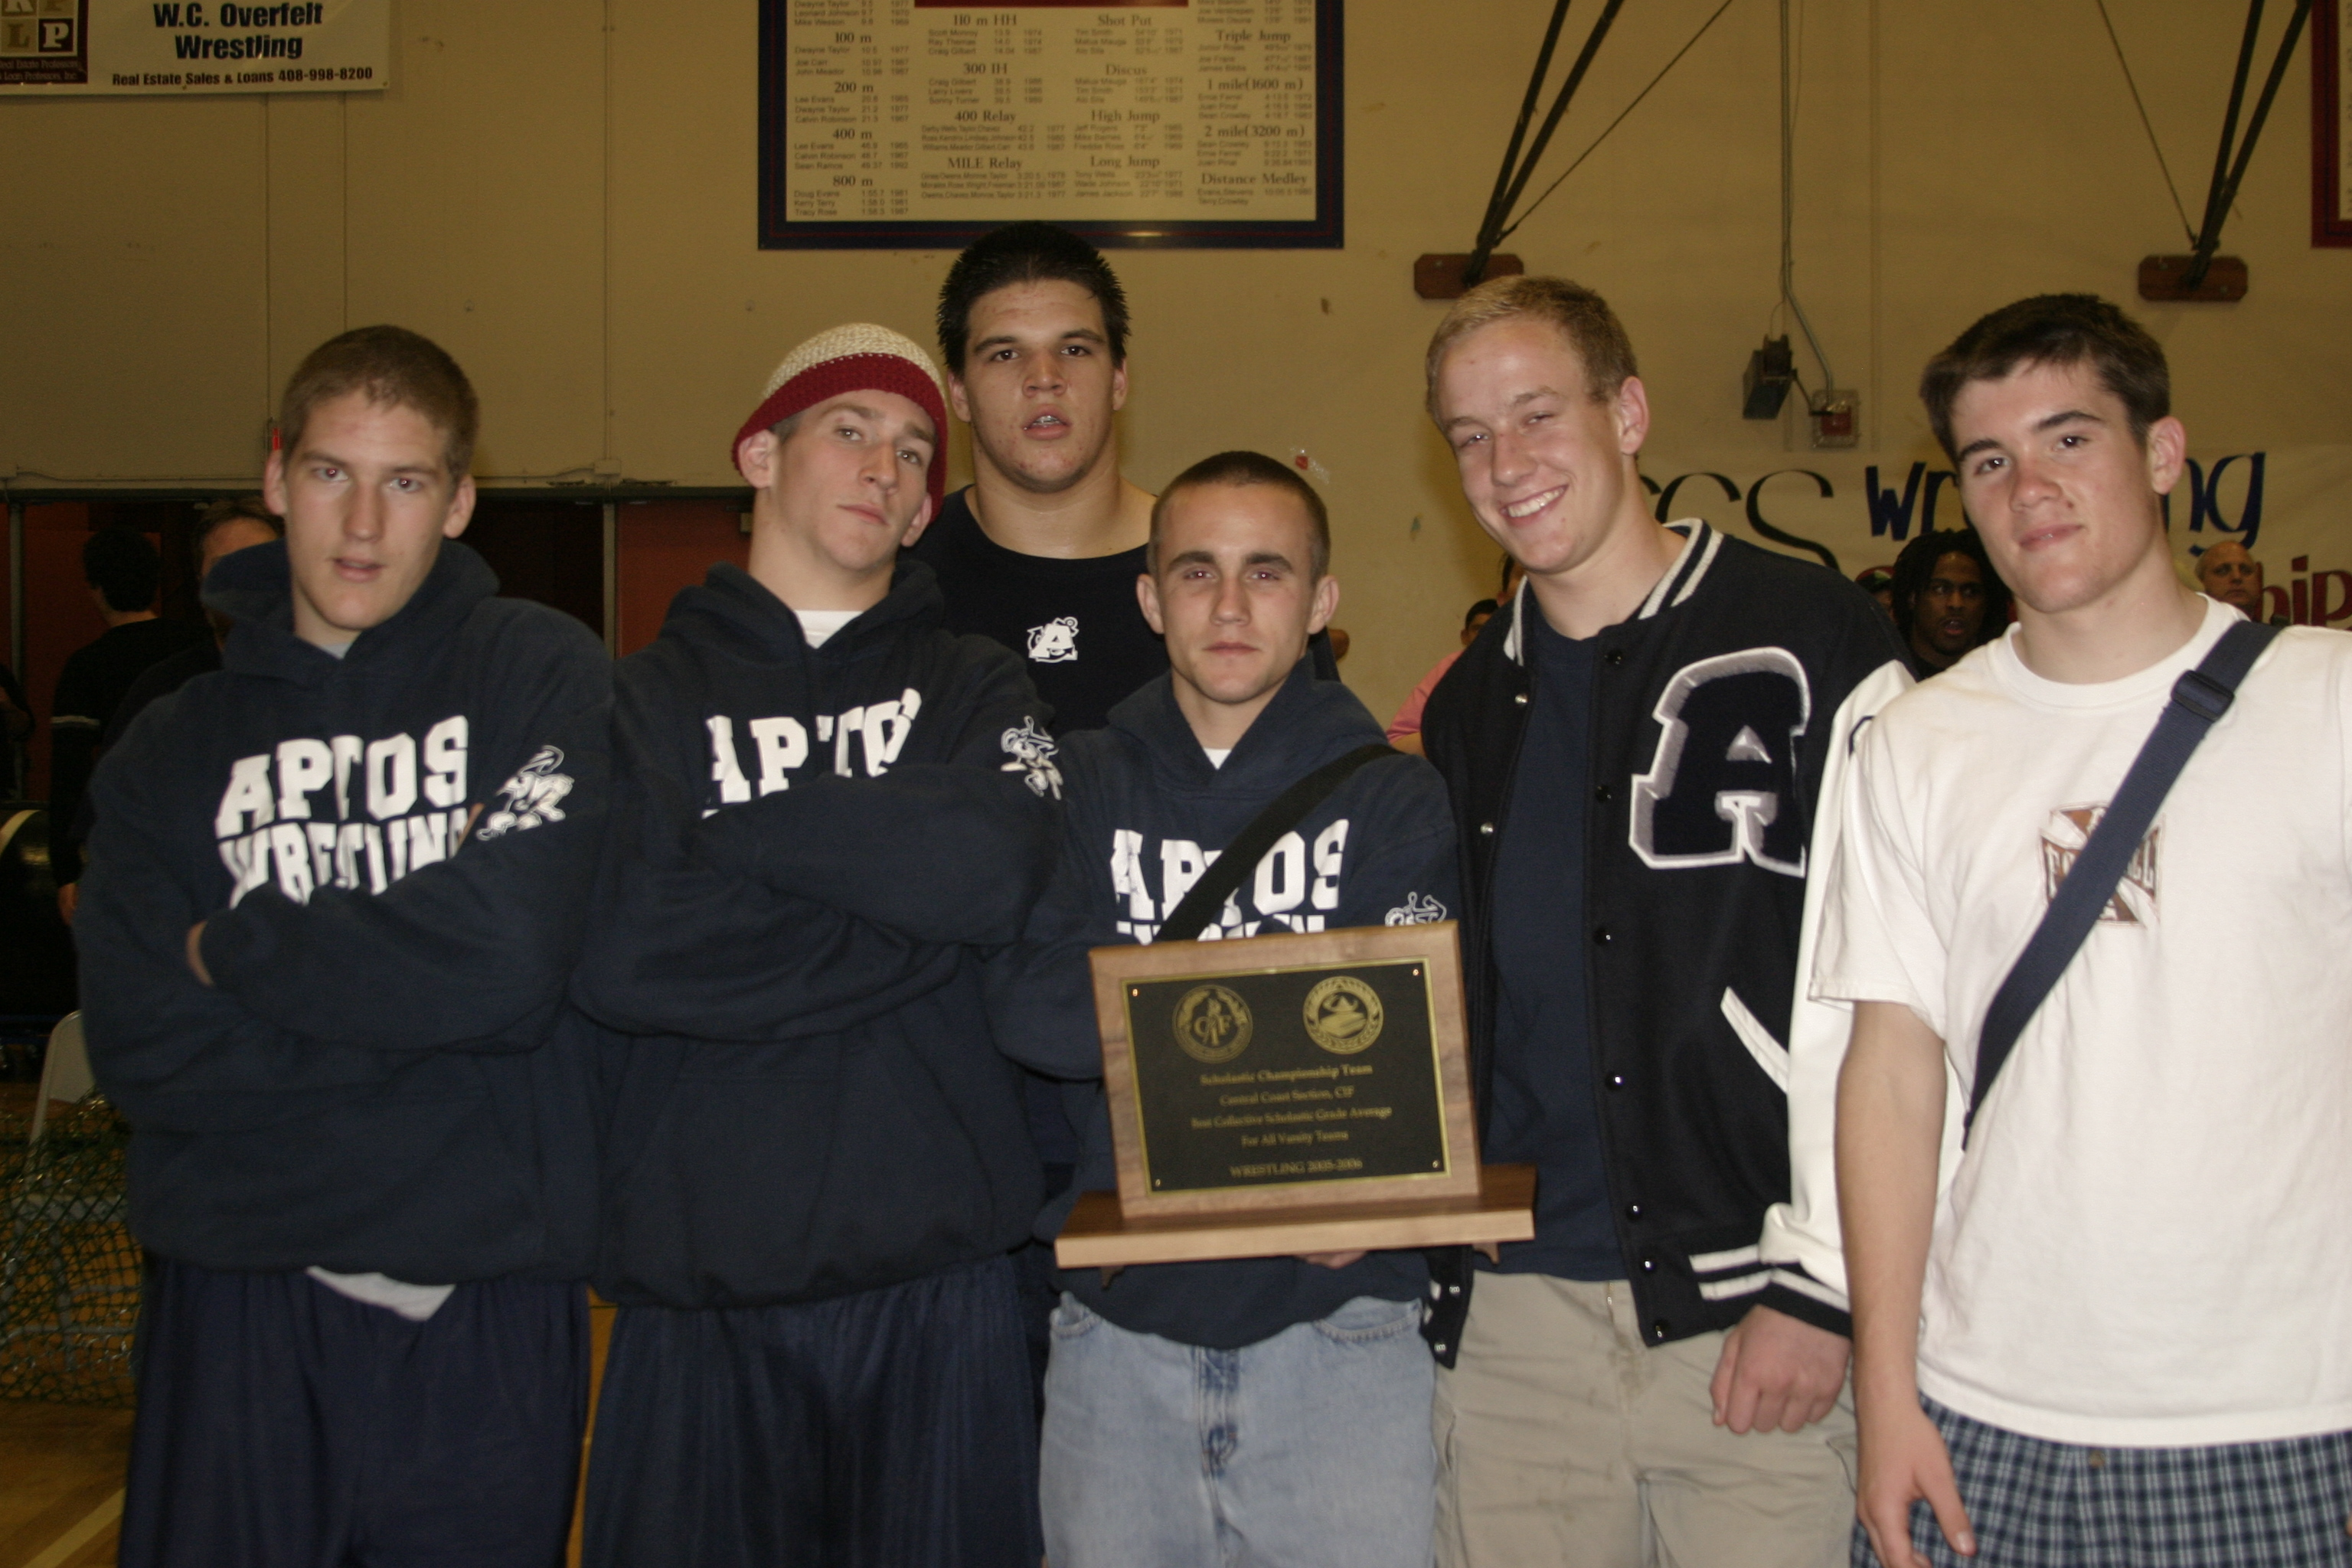 State Academic Champs '06